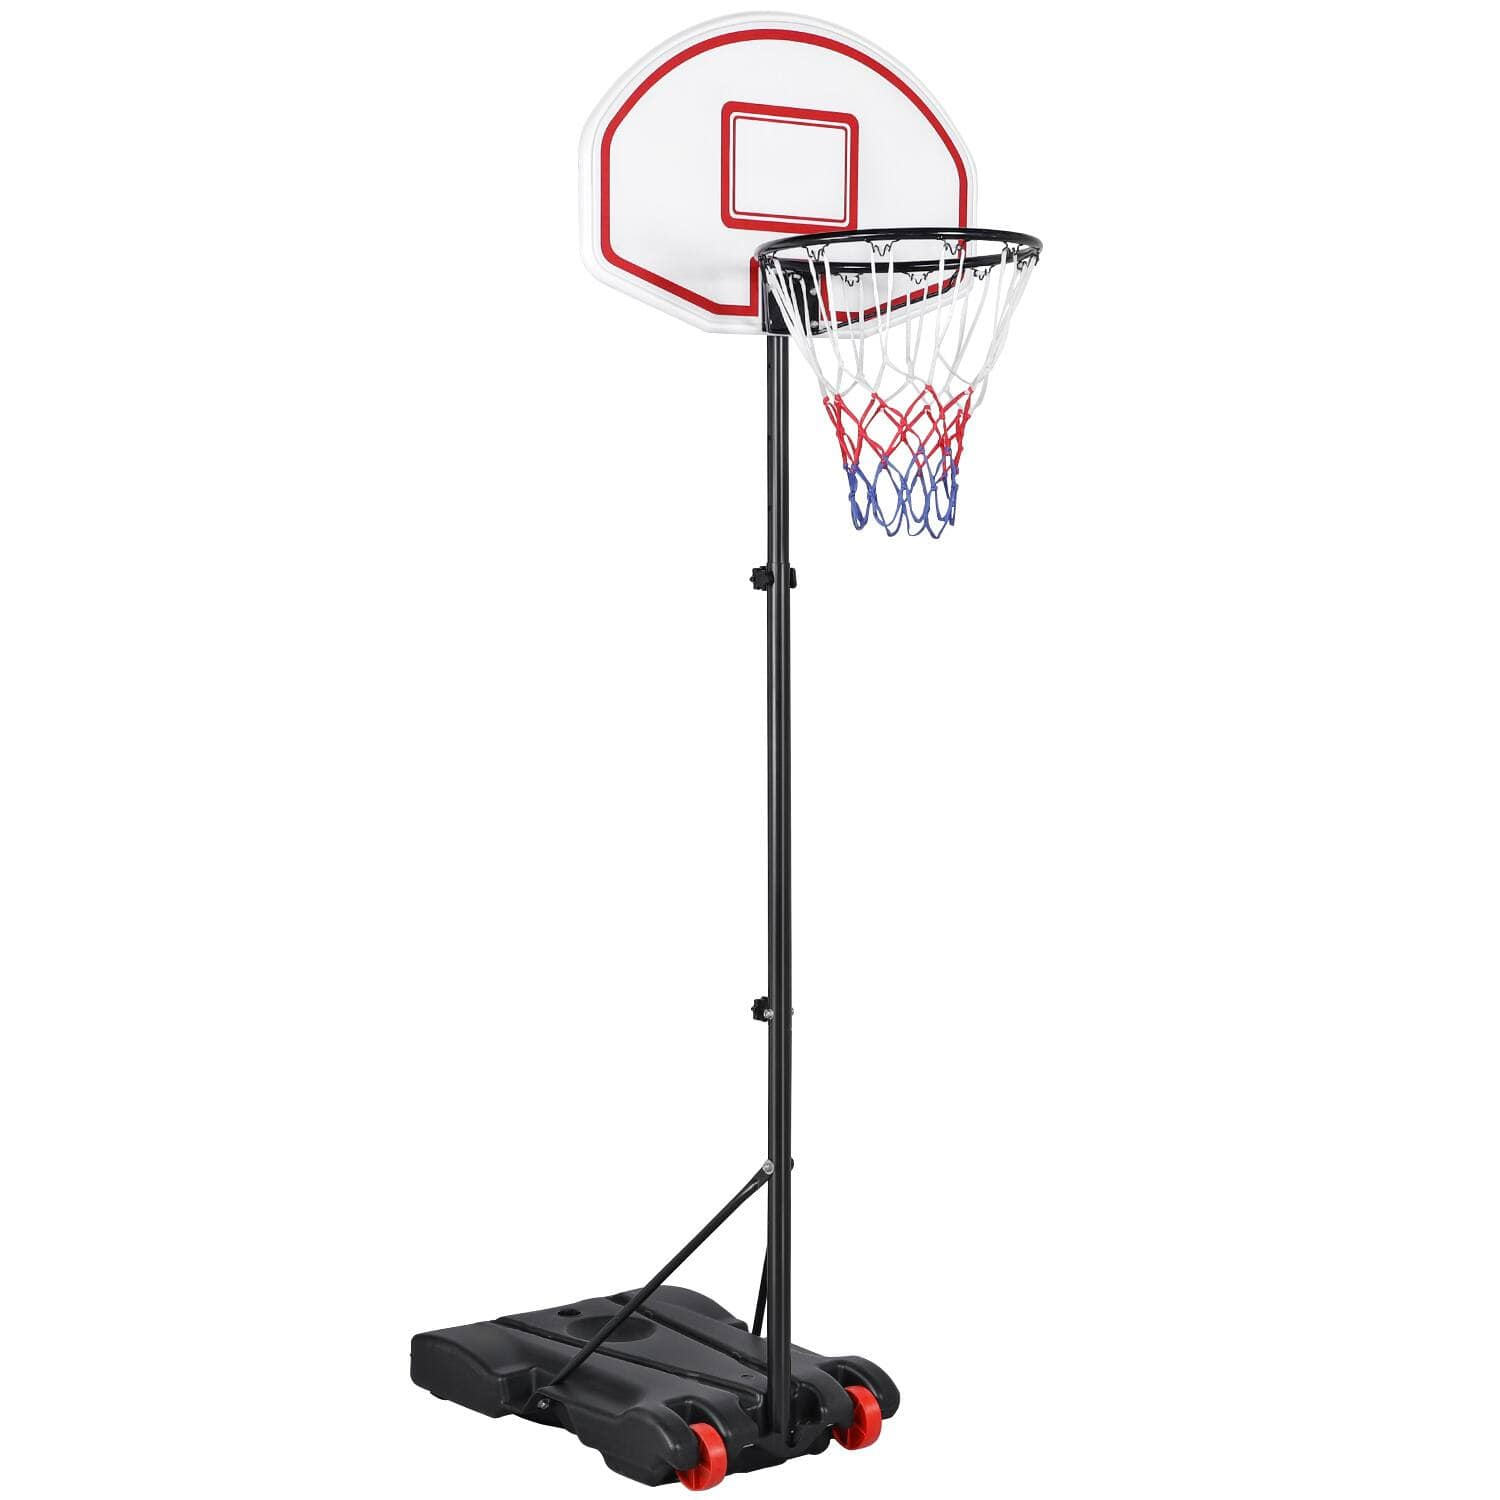 Yaheetech Portable Height Adjustable 5.2-7 ft Kids Basketball Hoop Stand with Wheels $51.59 + Free Shipping